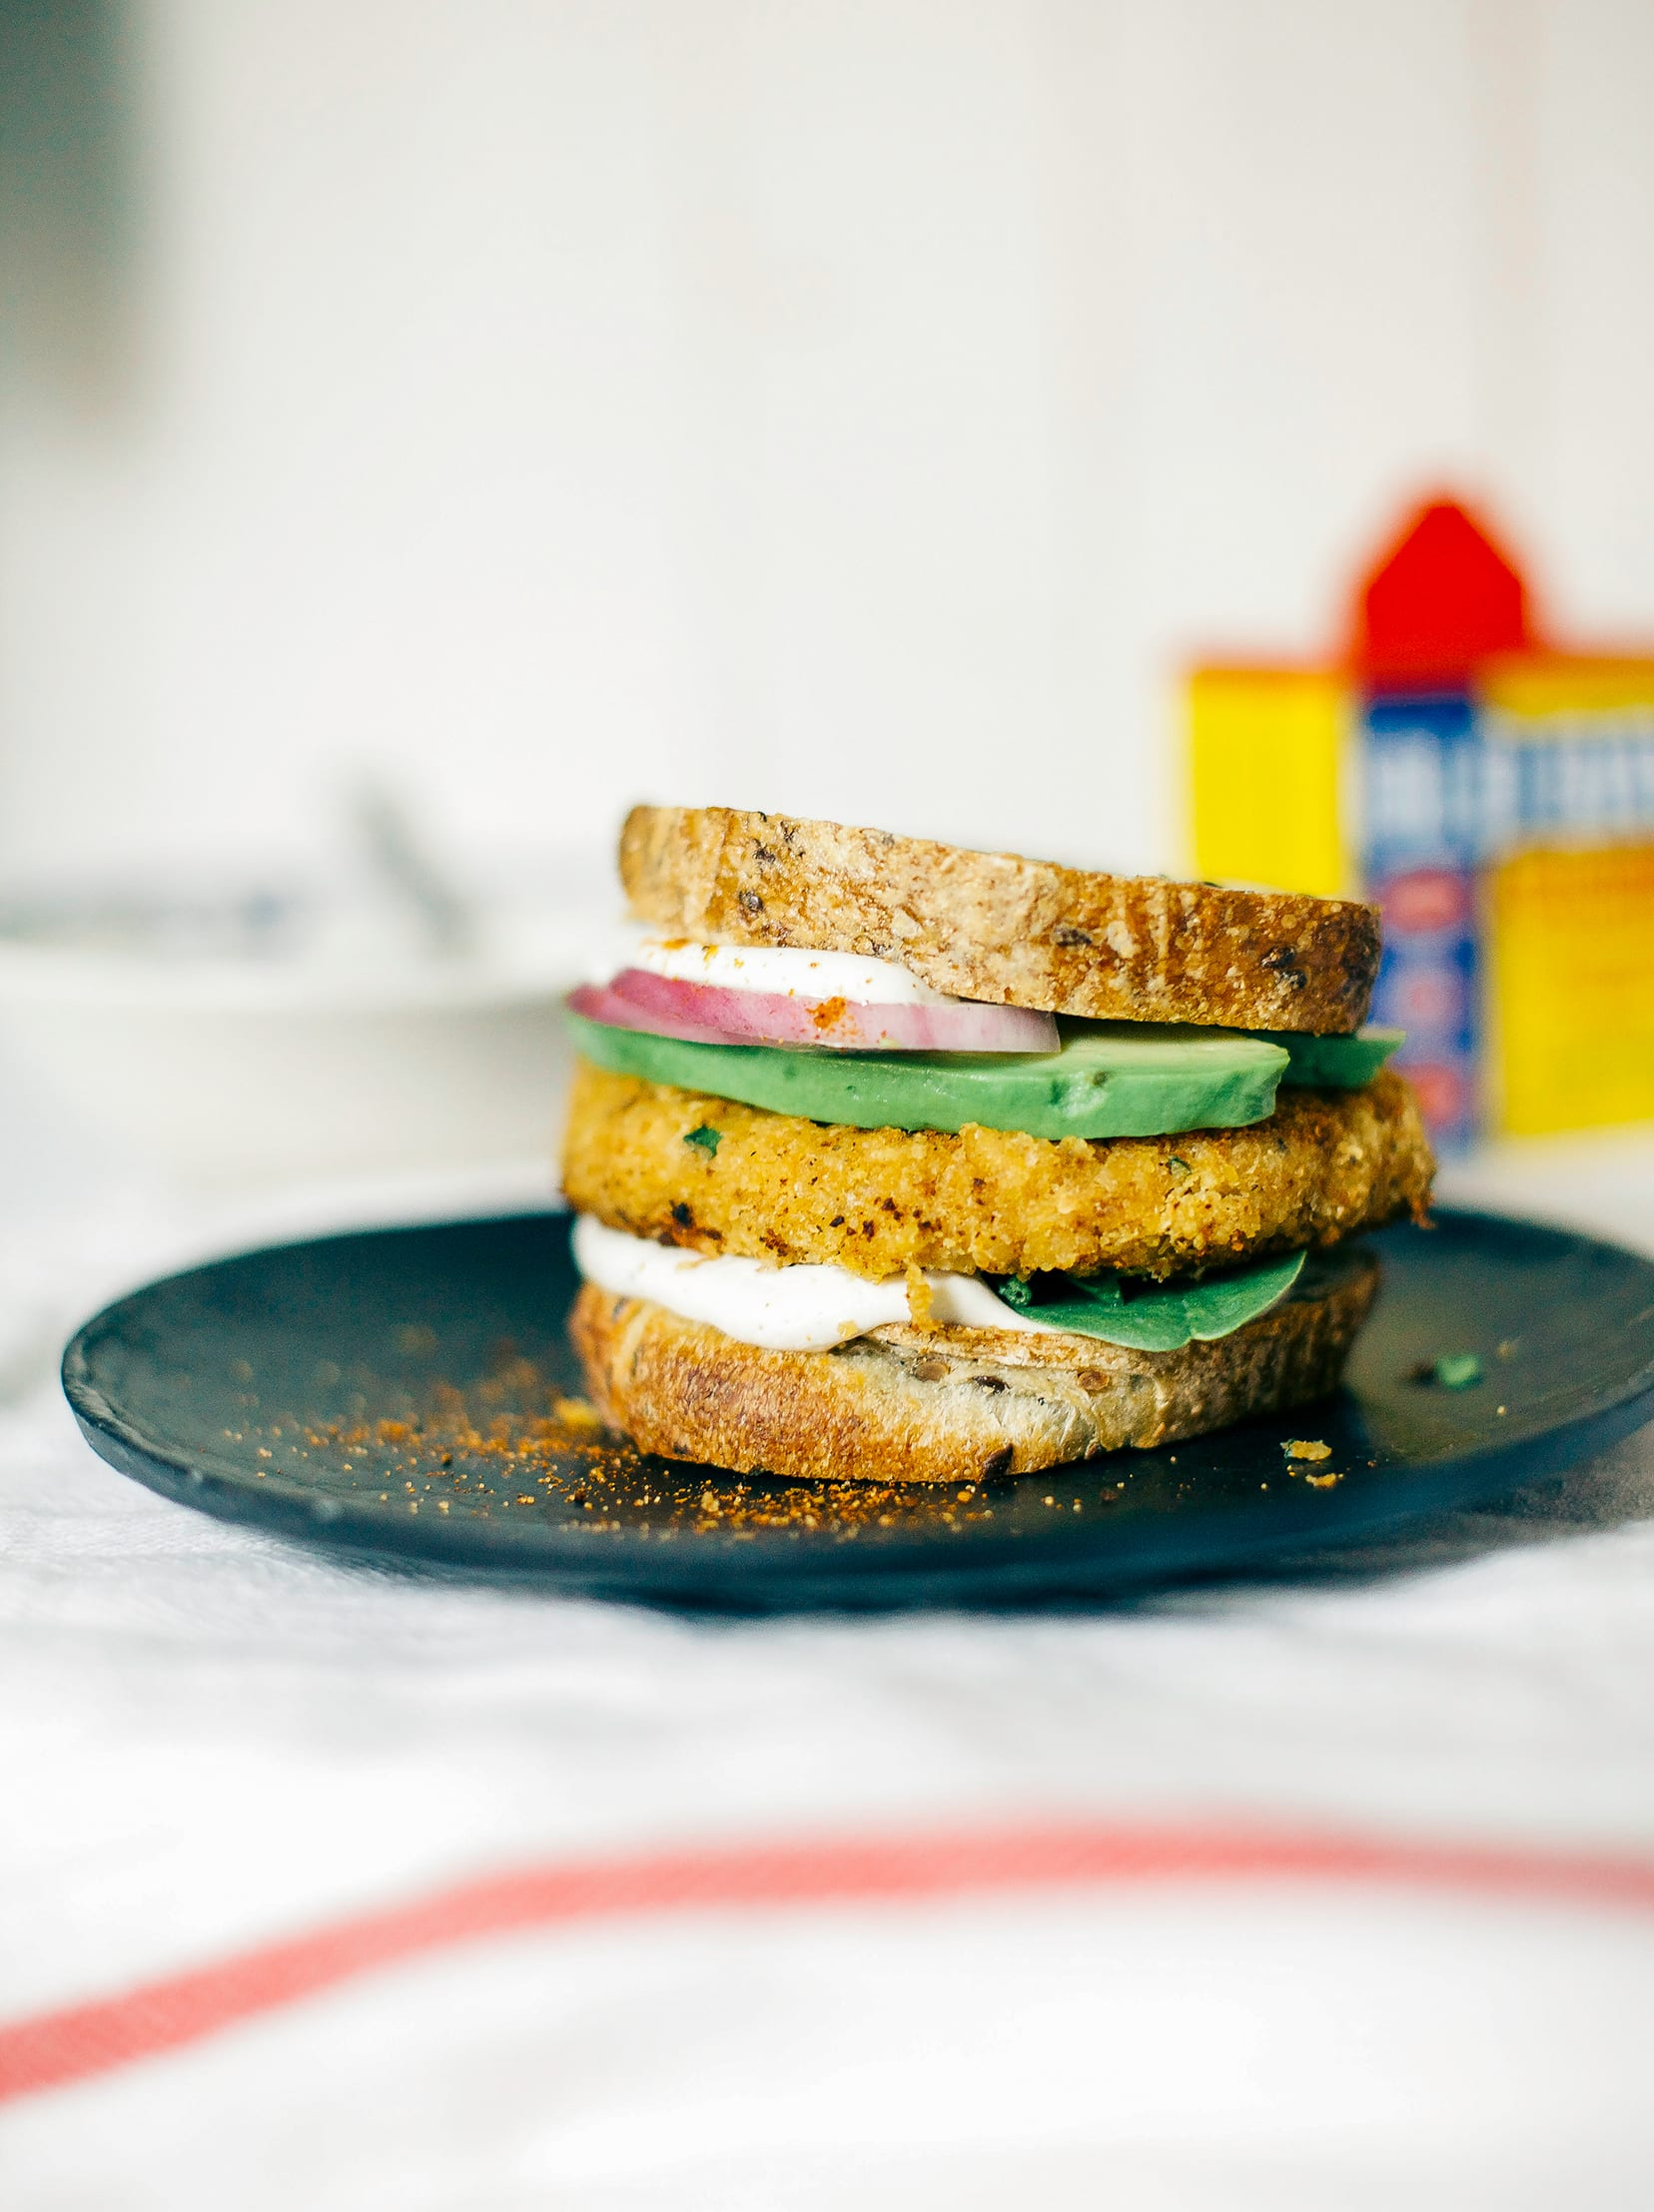 Chickpea & Cauliflower Burgers with Old Bay - The First Mess